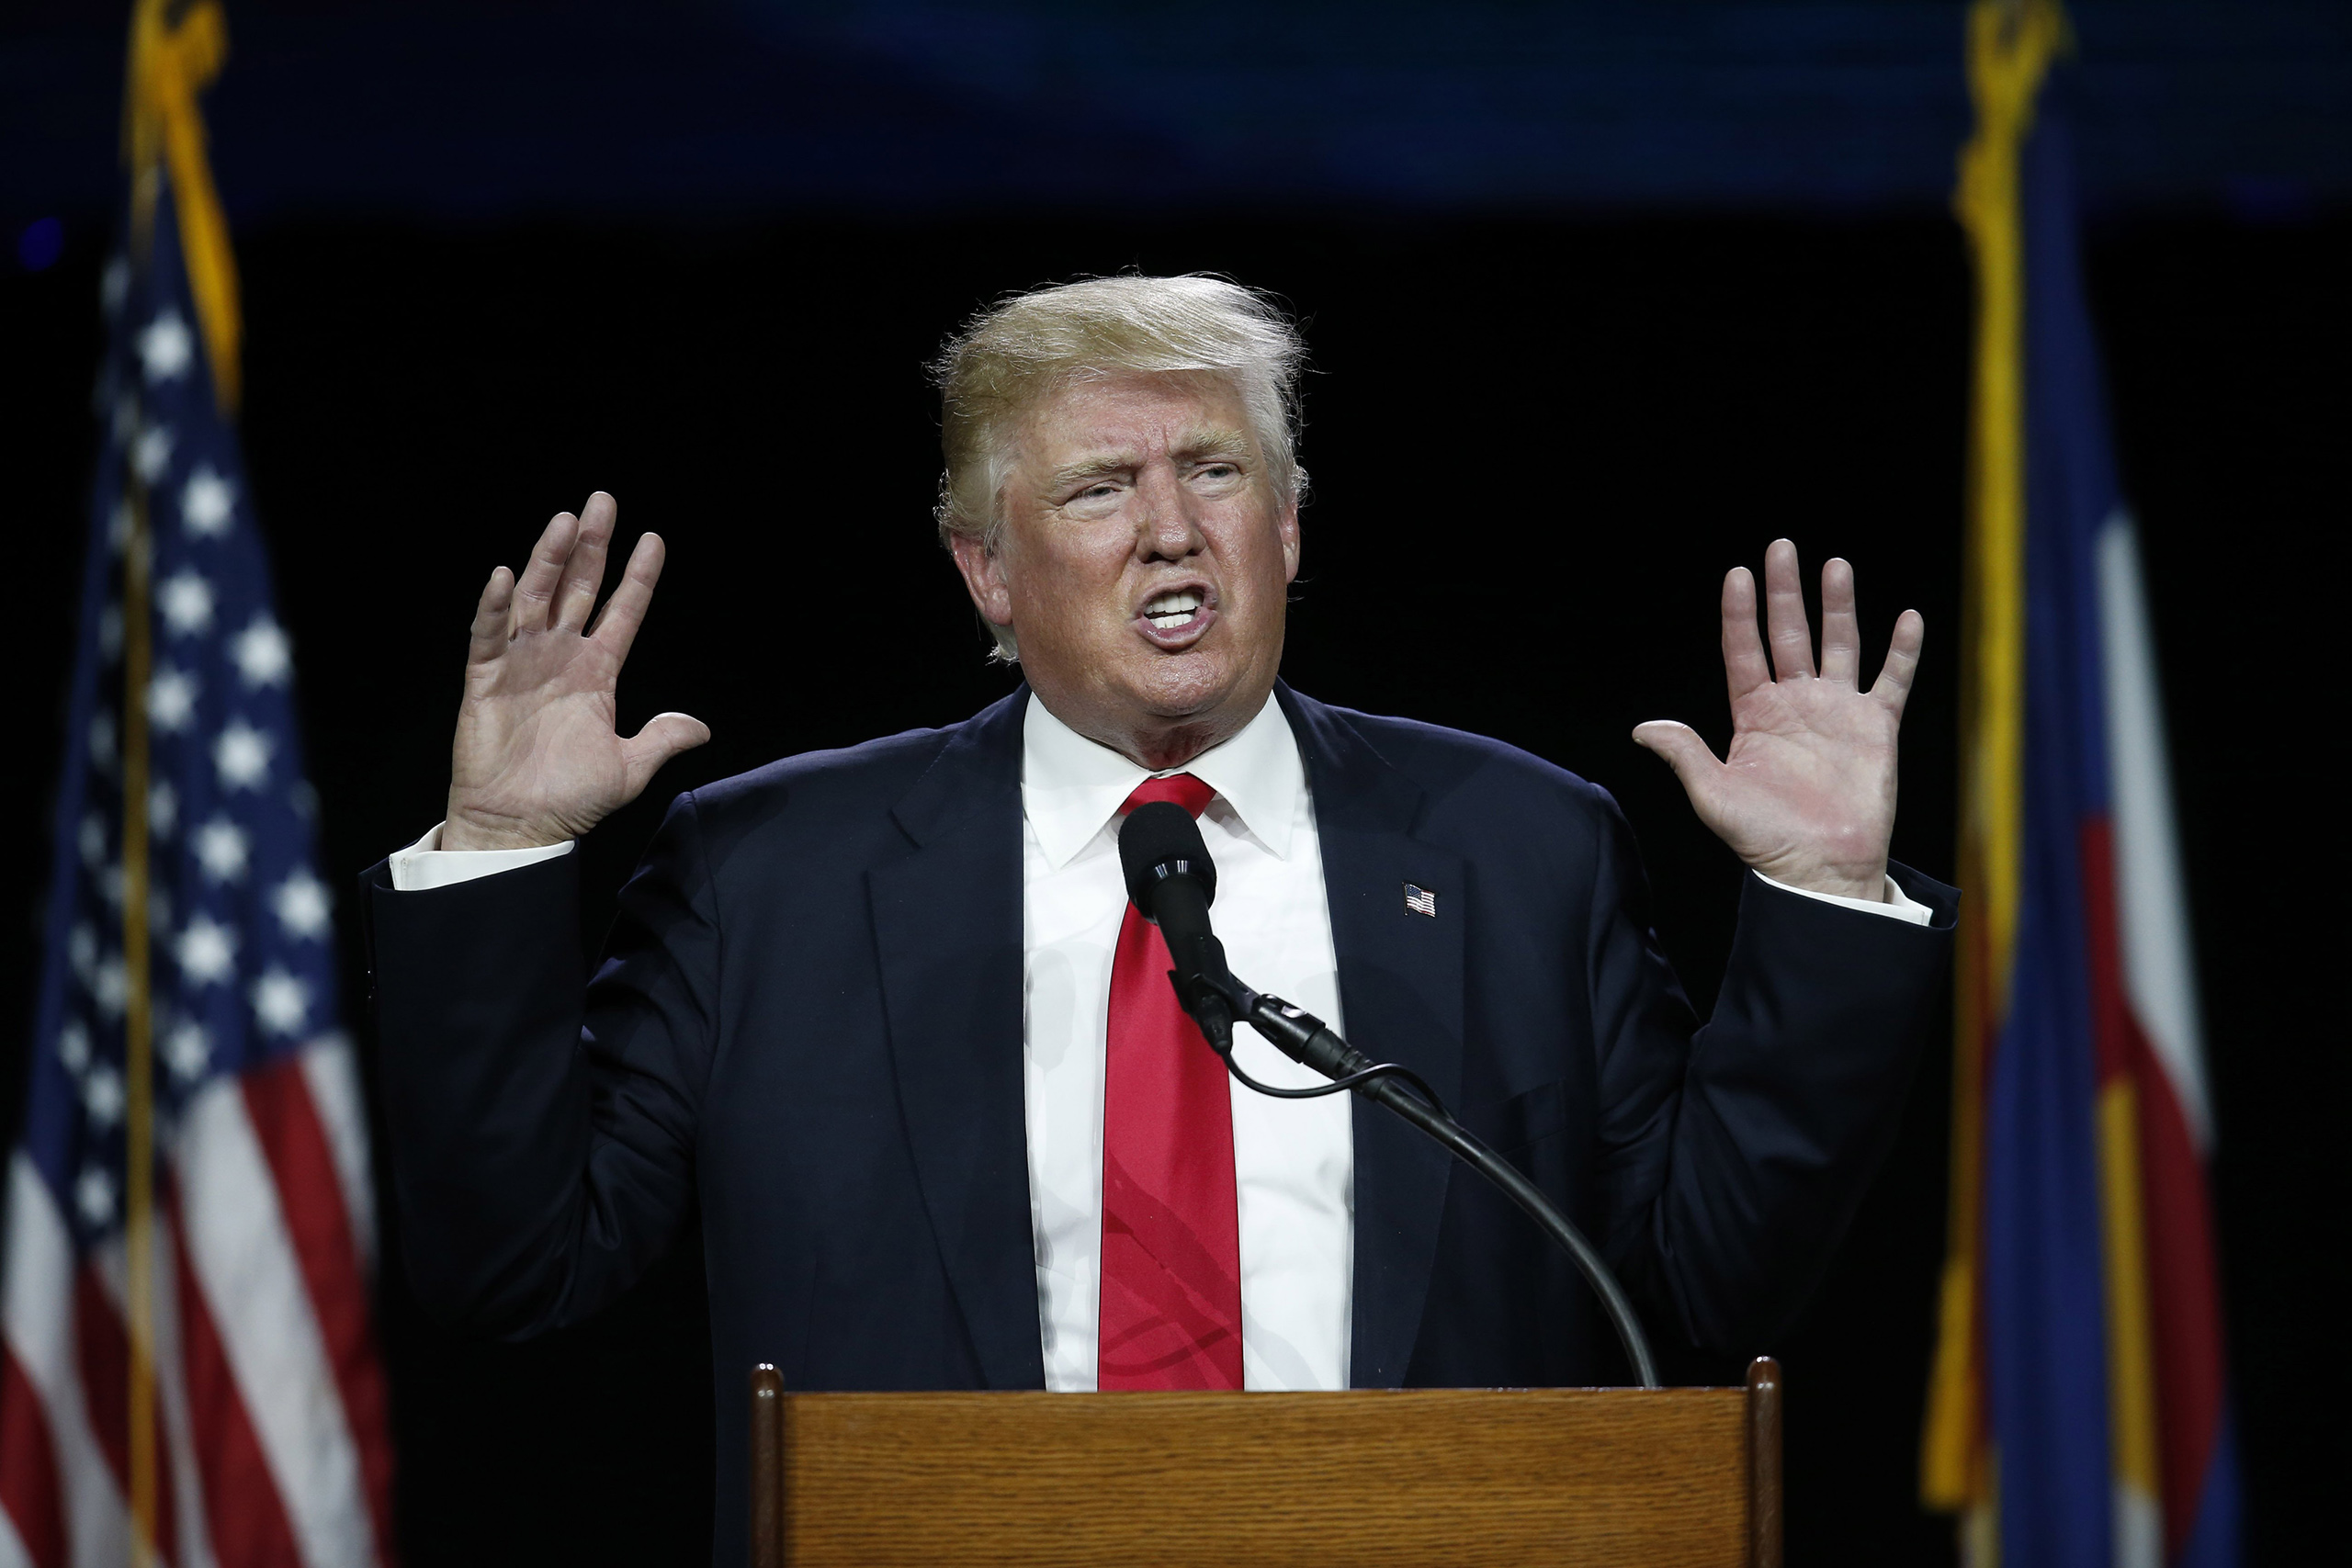 Donald Trump speaks during the opening session of the Western Conservative Summit in Denver, CO, July 1, 2016.